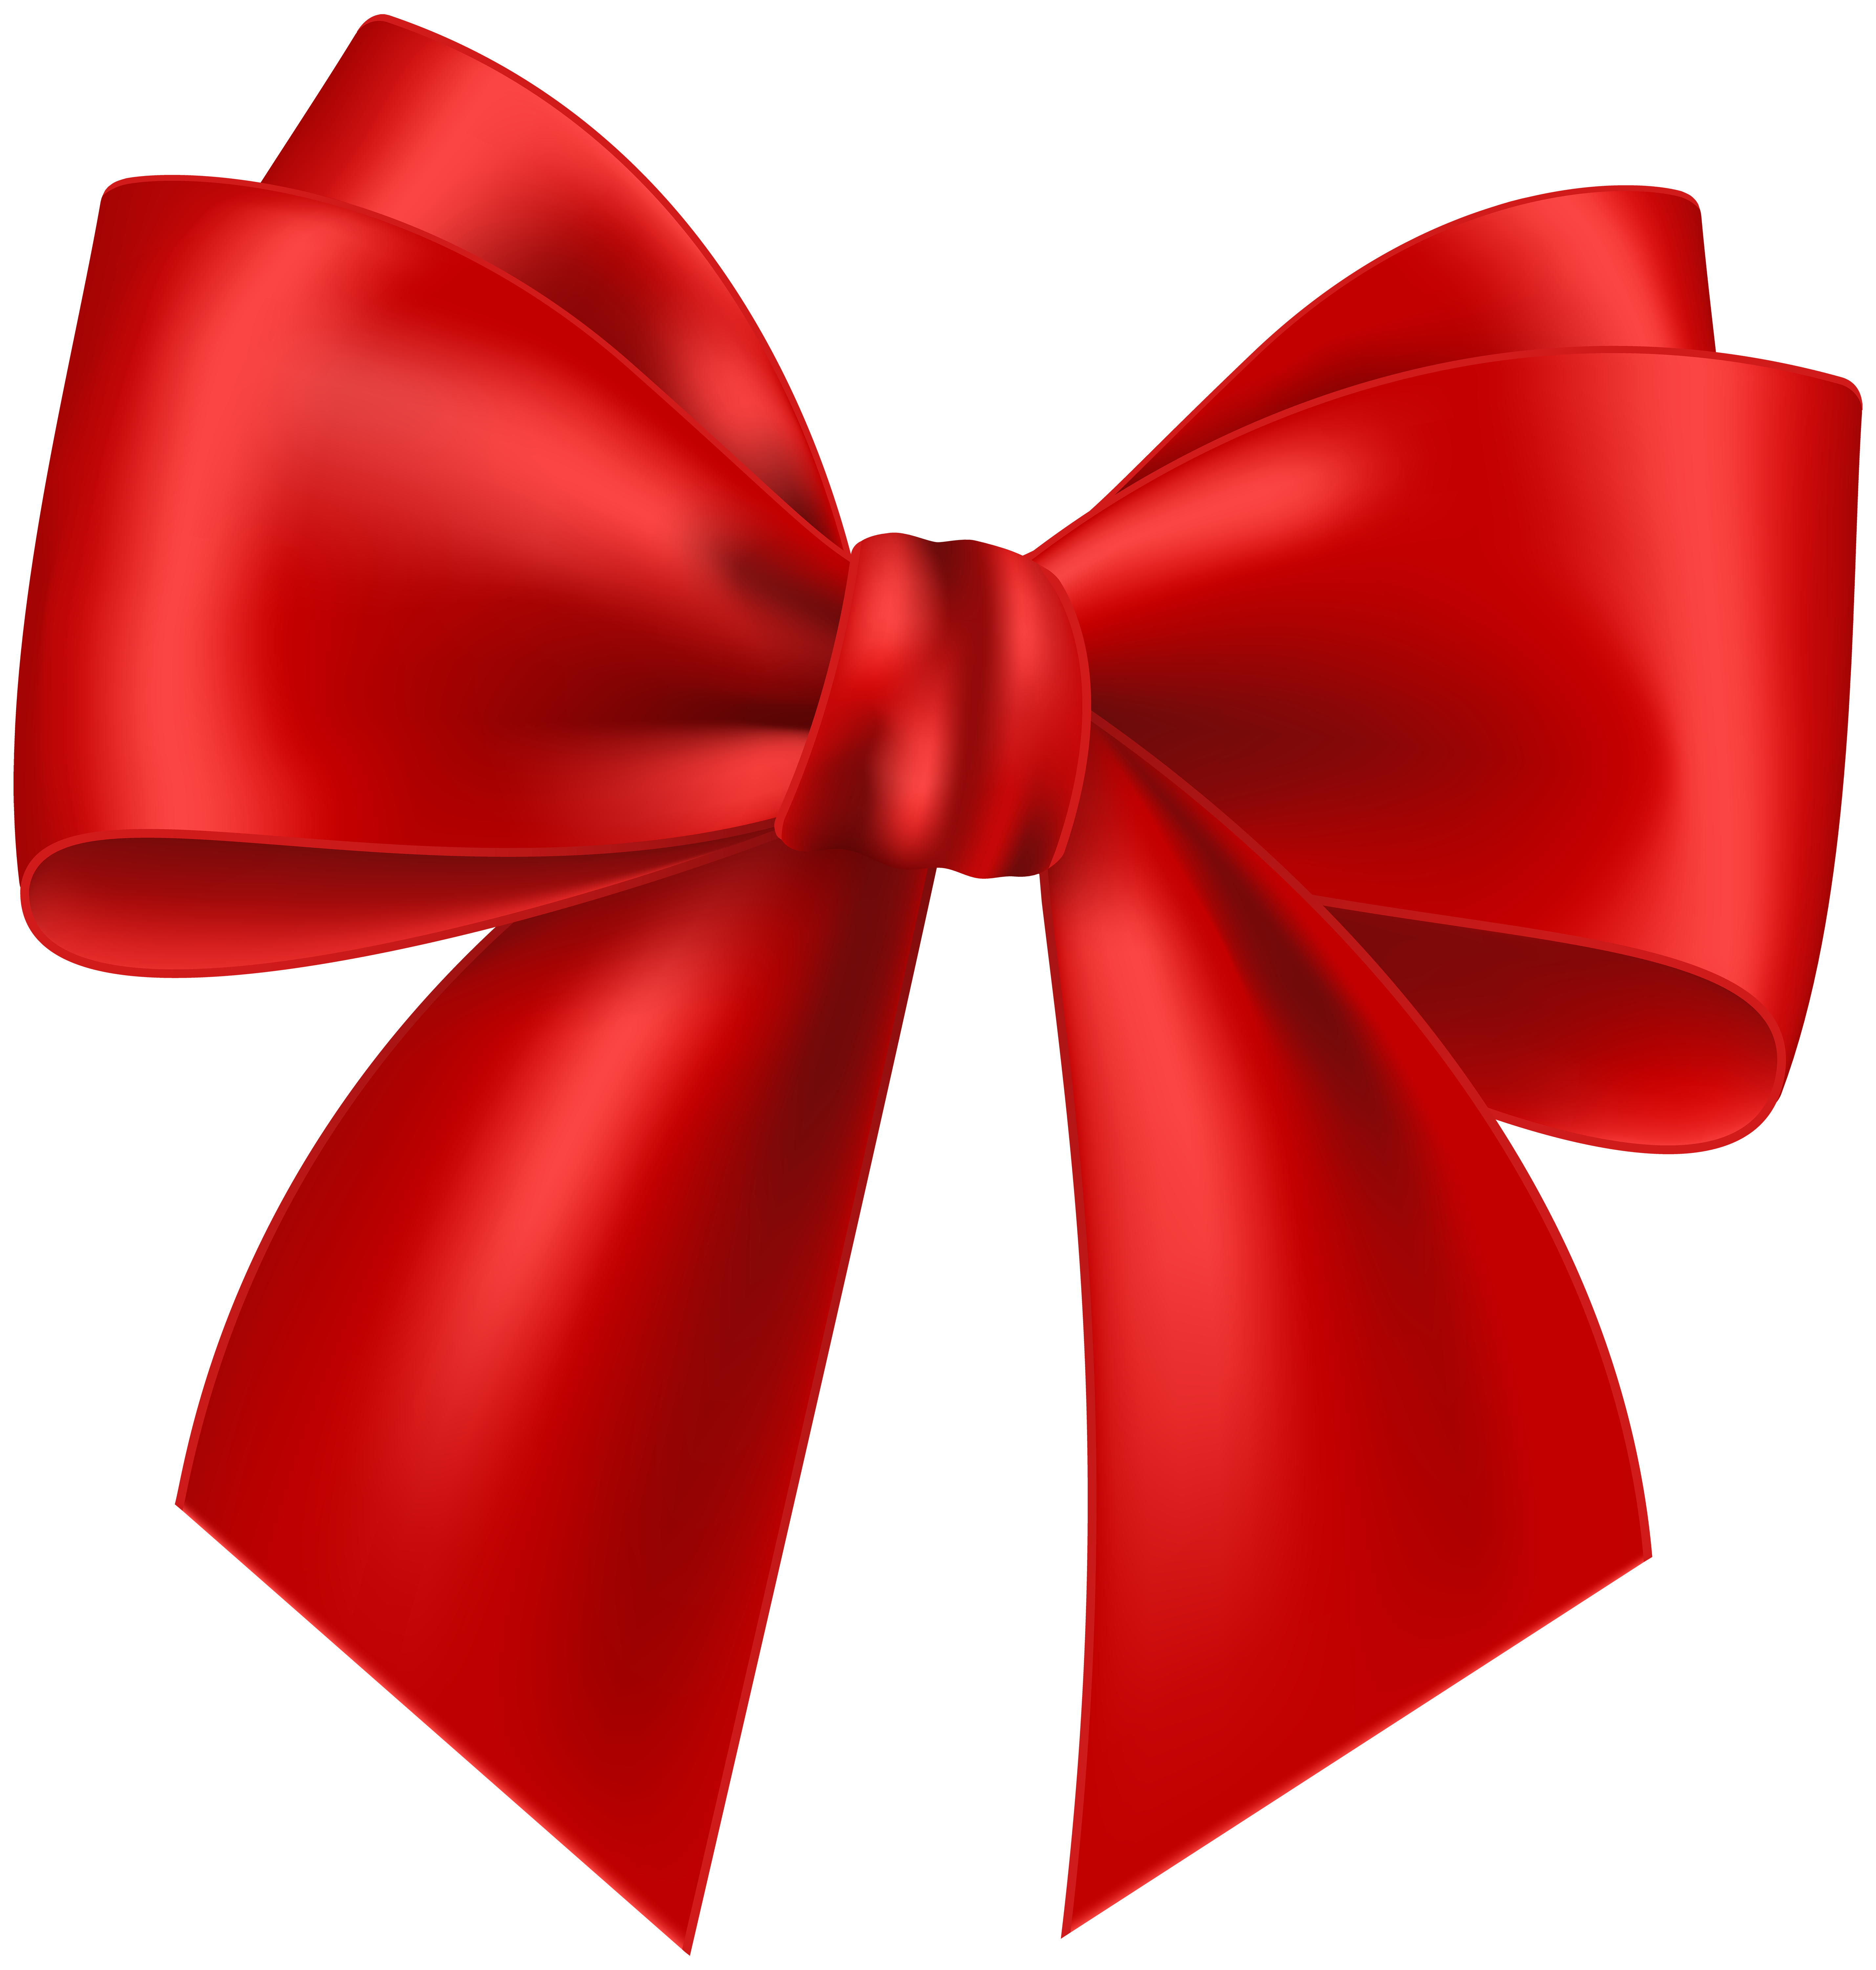 red bow transparent clip art image gallery yopriceville high rh pinterest com red bow clip art images red bow clipart free